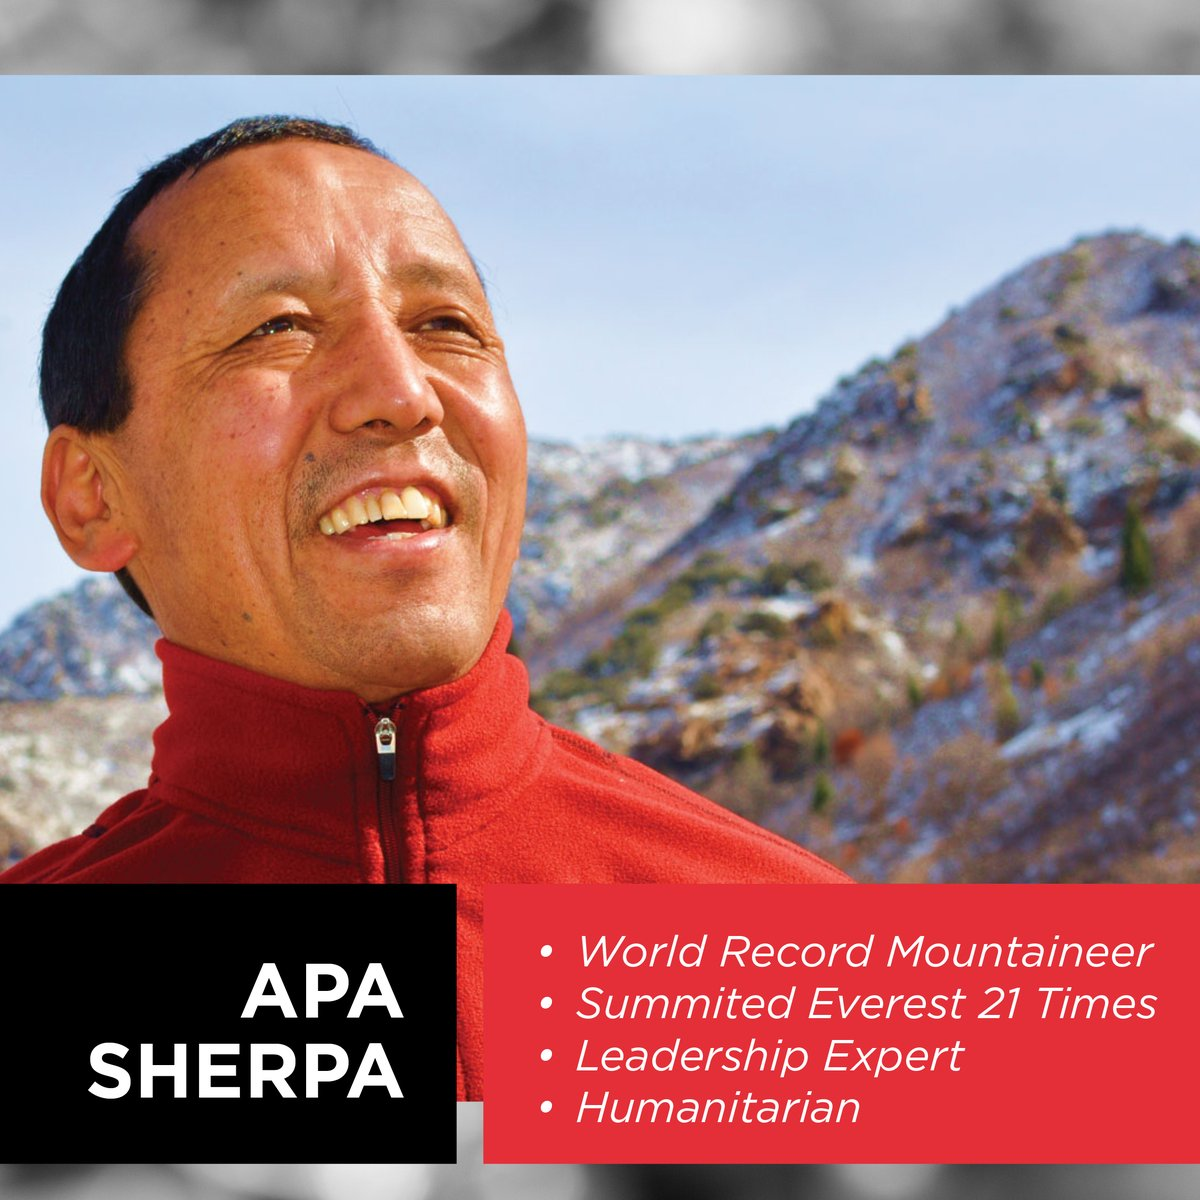 https://t.co/Tx5Z2KxgRj We are jumping backflips to announce the booking of our VIP Client, Apa Sherpa, the Michael Jordan of Mountain Climbing, at Weber State University, in Ogden, Utah, June 4 , 2020 Apa has scaled Mt Everest 21 times.  4 times without oxygen! WorldRecordHolder https://t.co/hbuP25IYeN